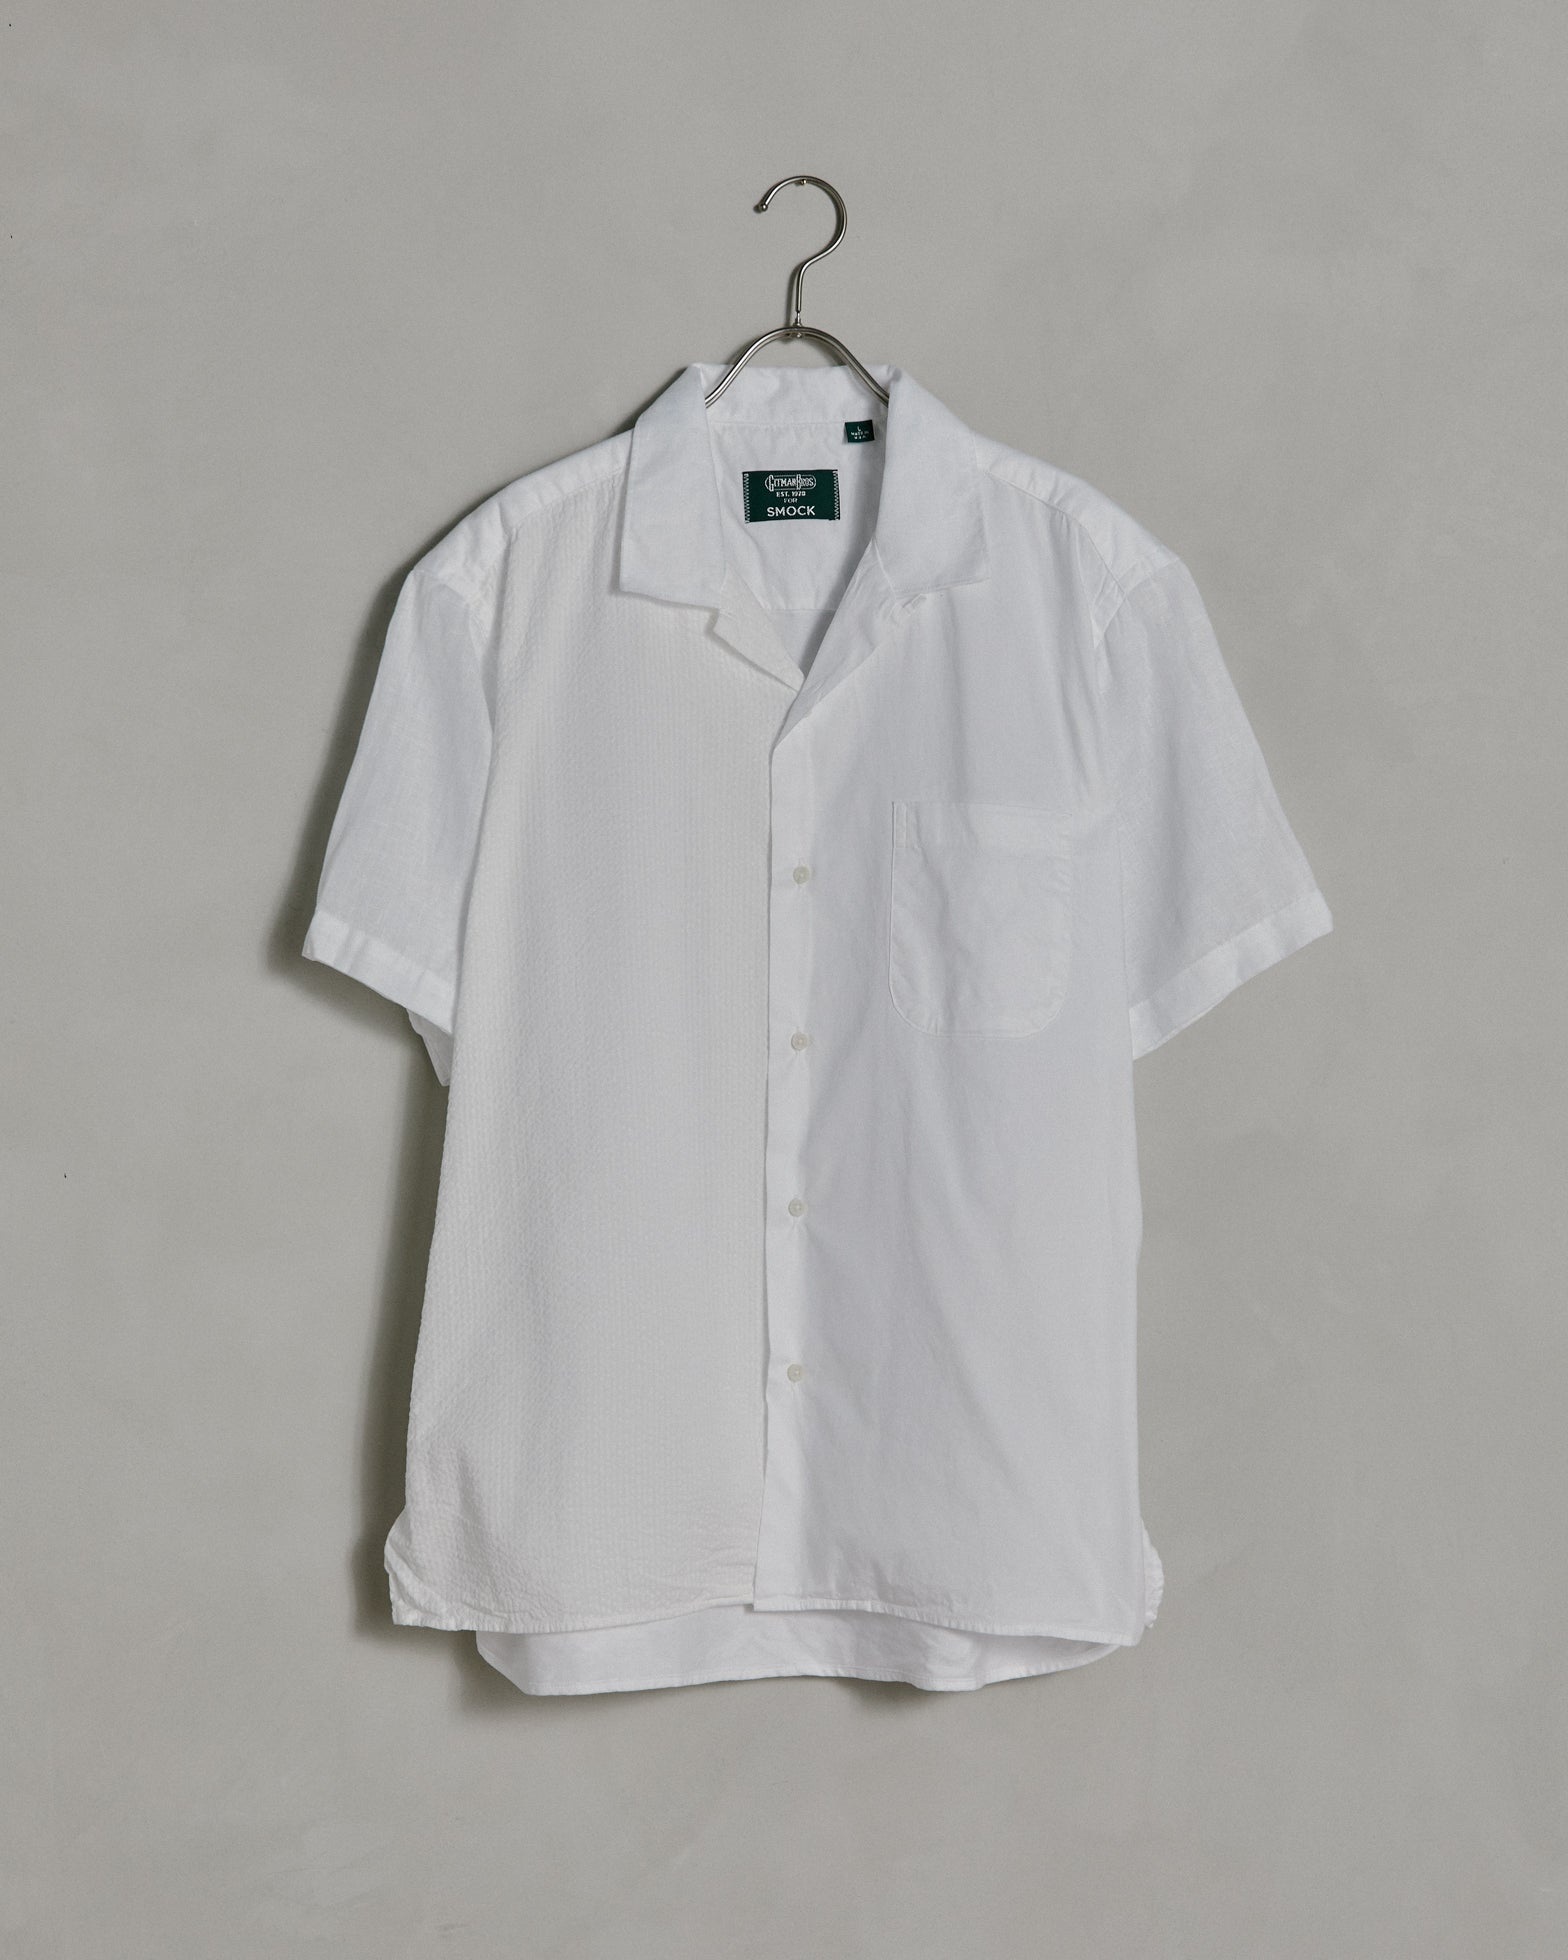 Omakase Camp Shirt in White